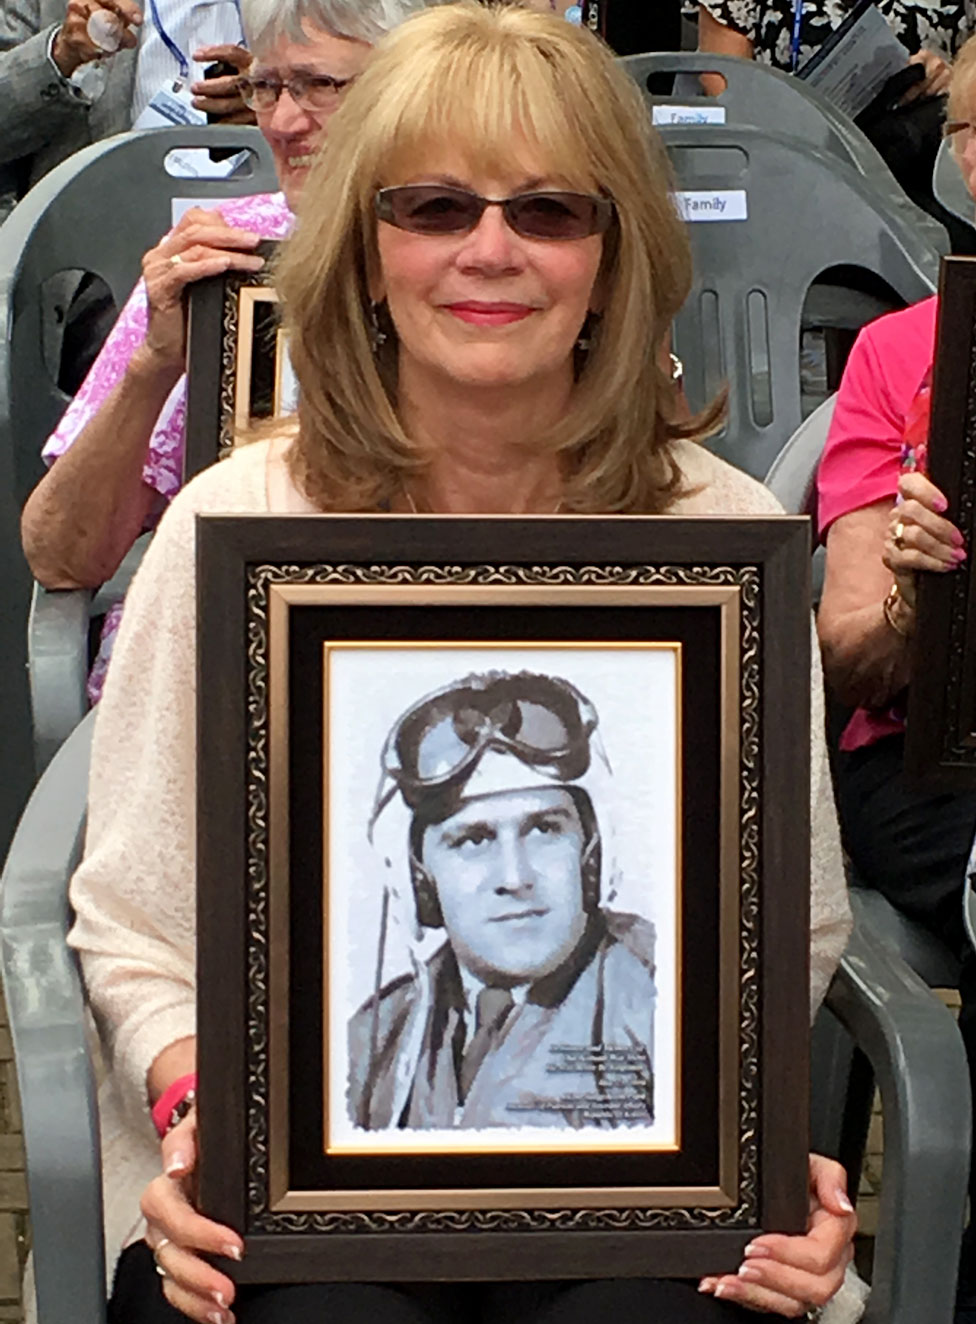 Diana Sanfilippo with a picture of her father